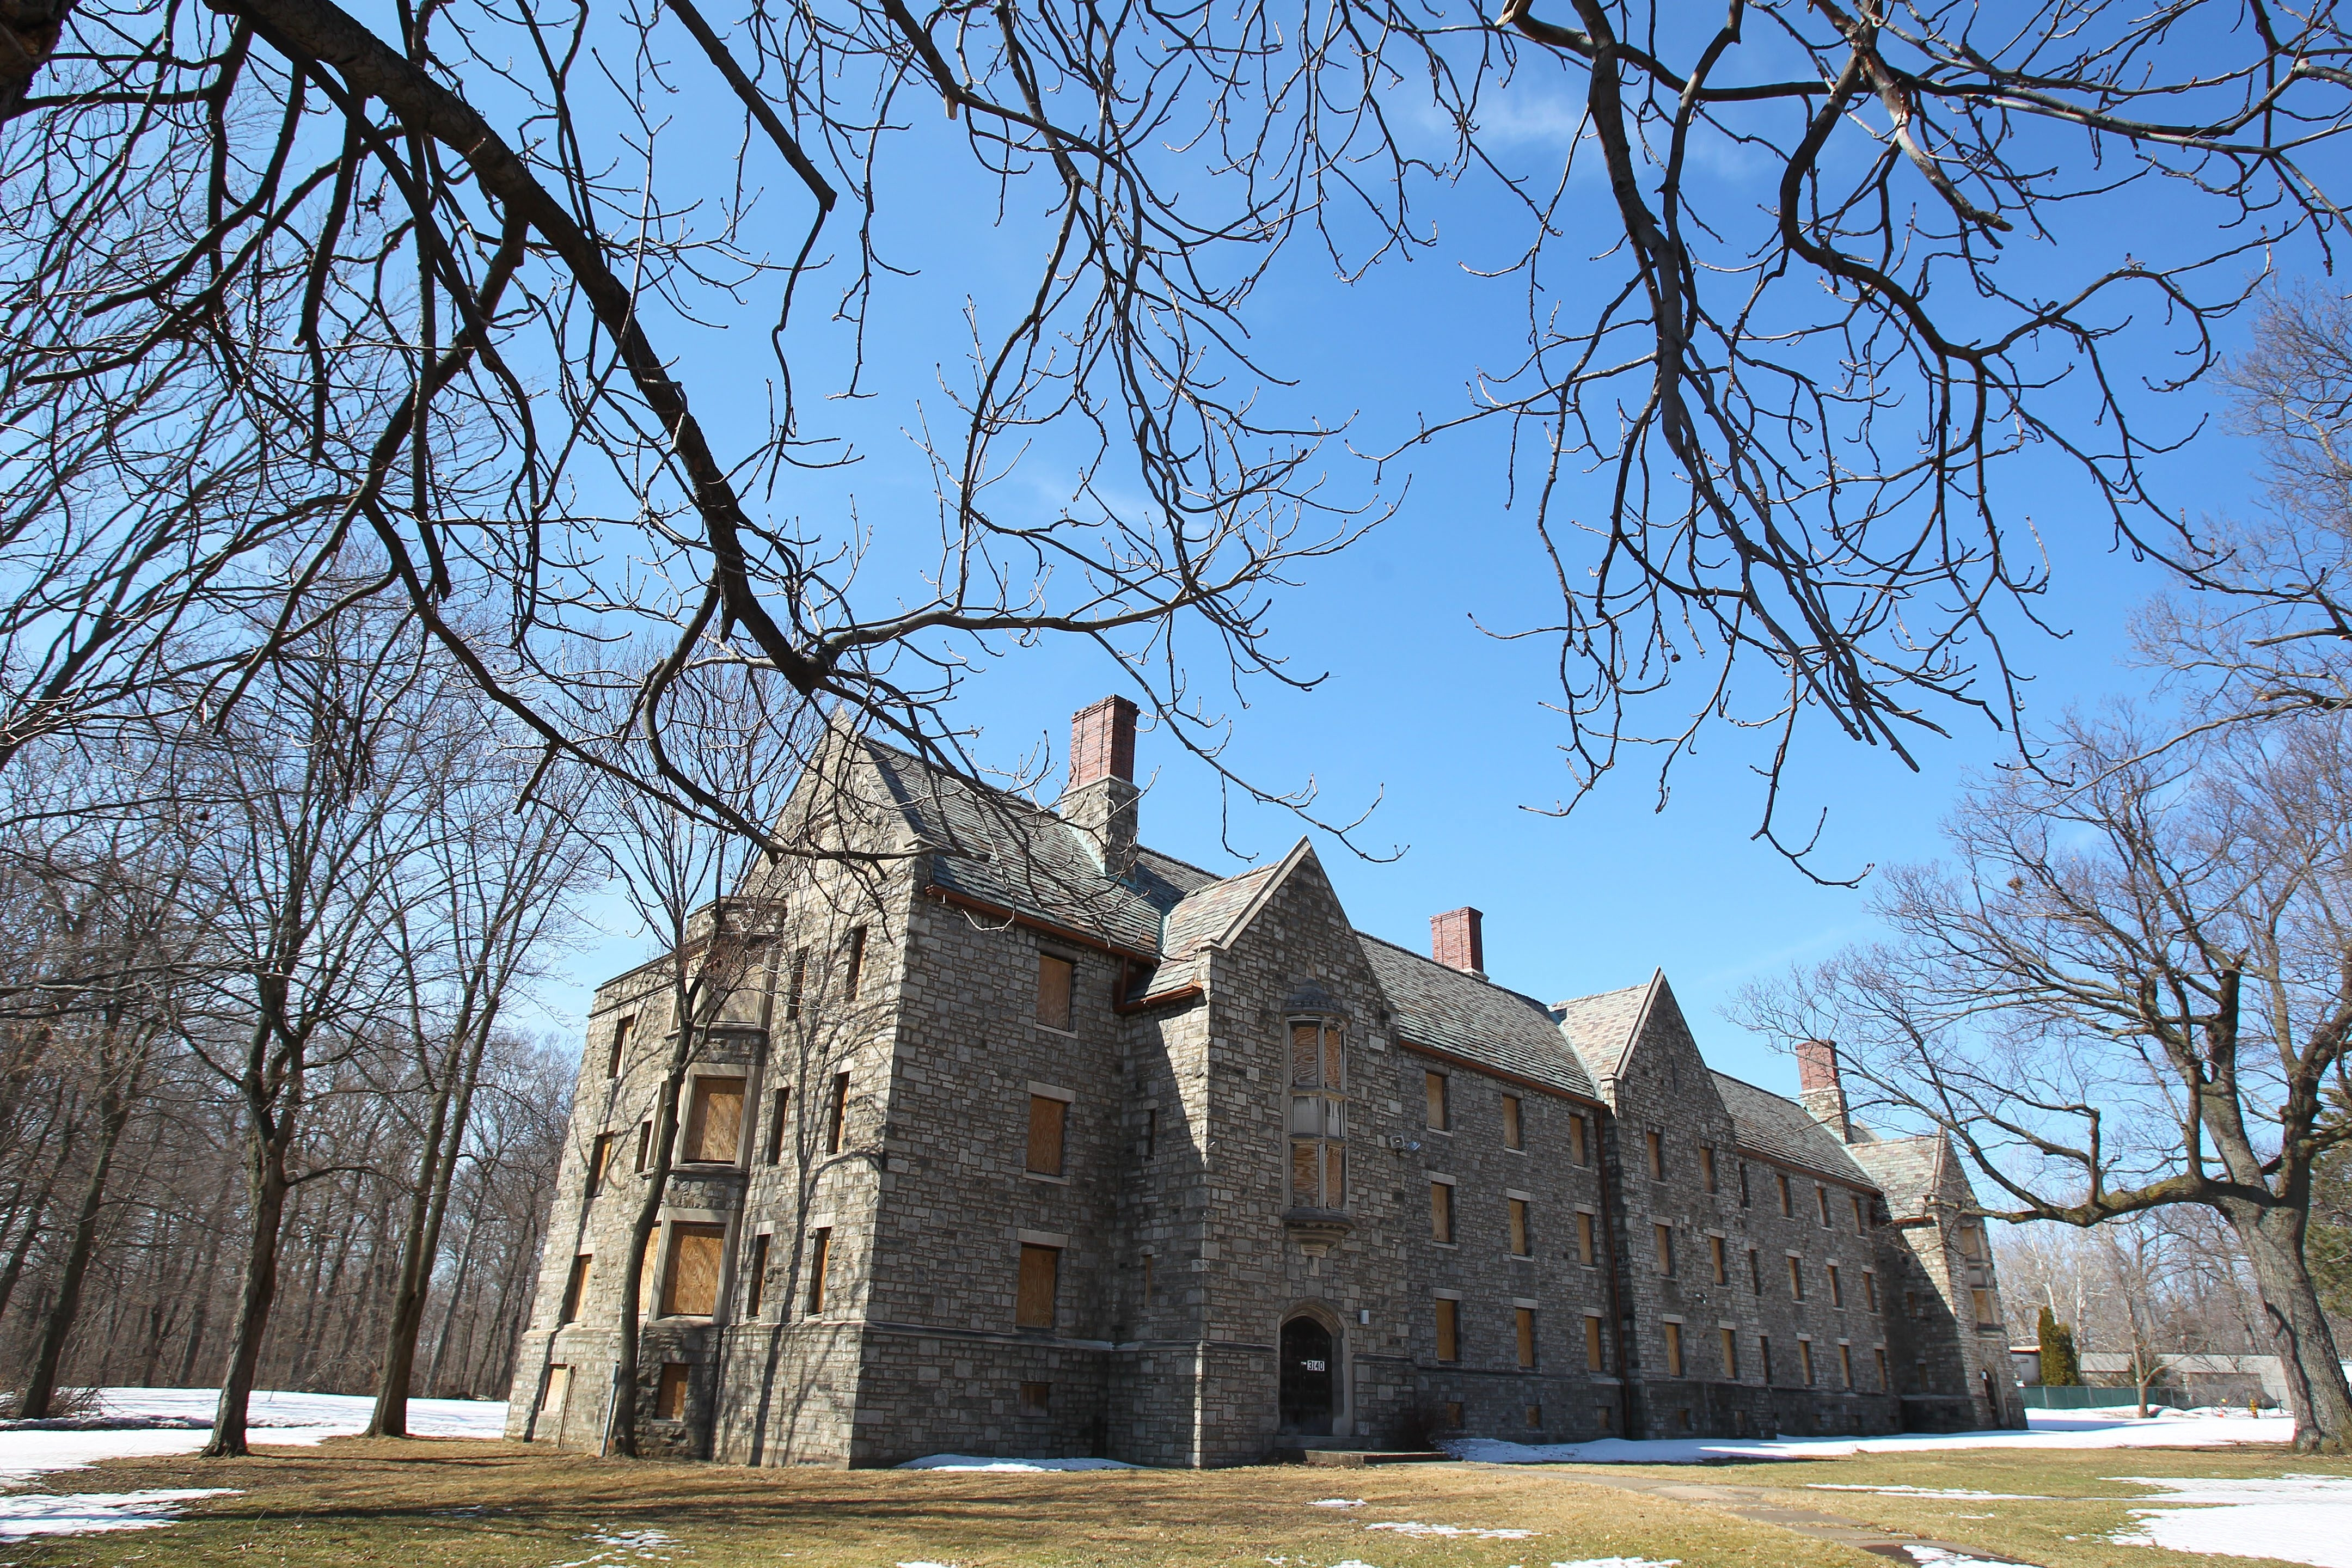 The Schoellkopf school building in DeVeaux Woods could have a future as a boutique hotel, state officials say.